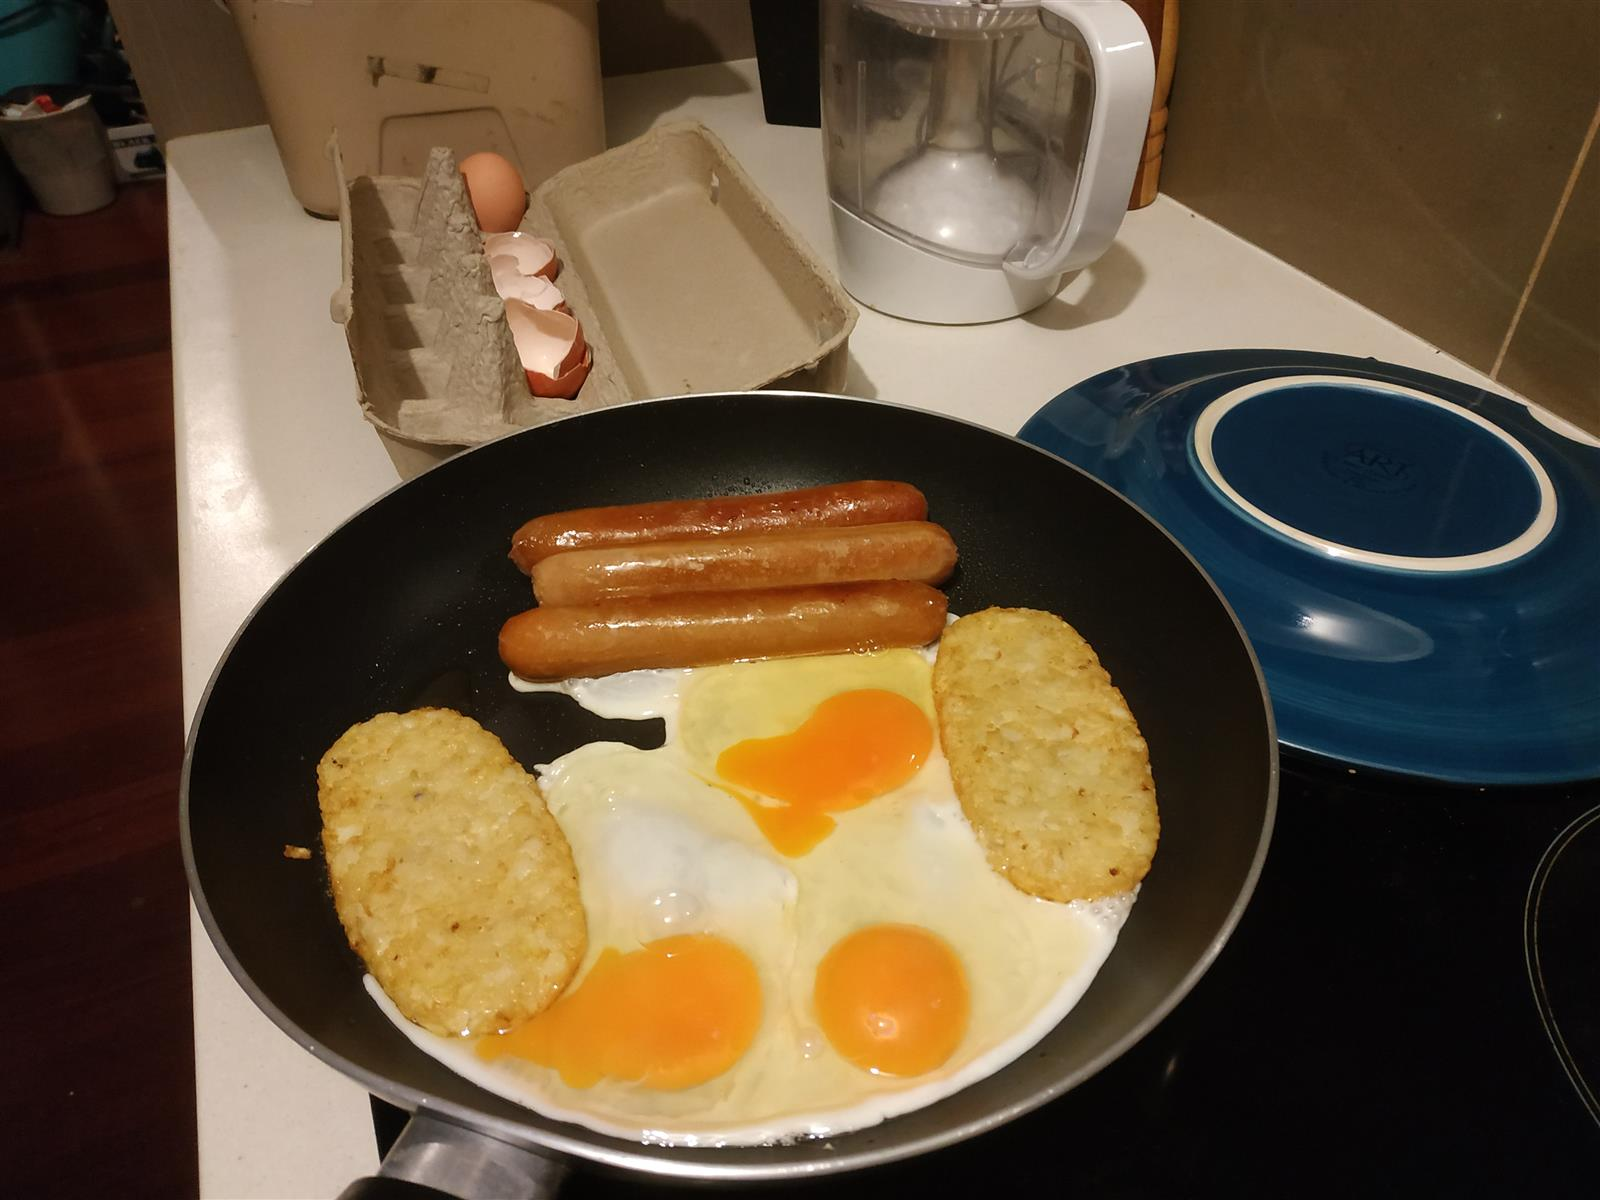 The Best Breakfast in the World Step by Step.: the Full English-img_20210602_221734-jpg